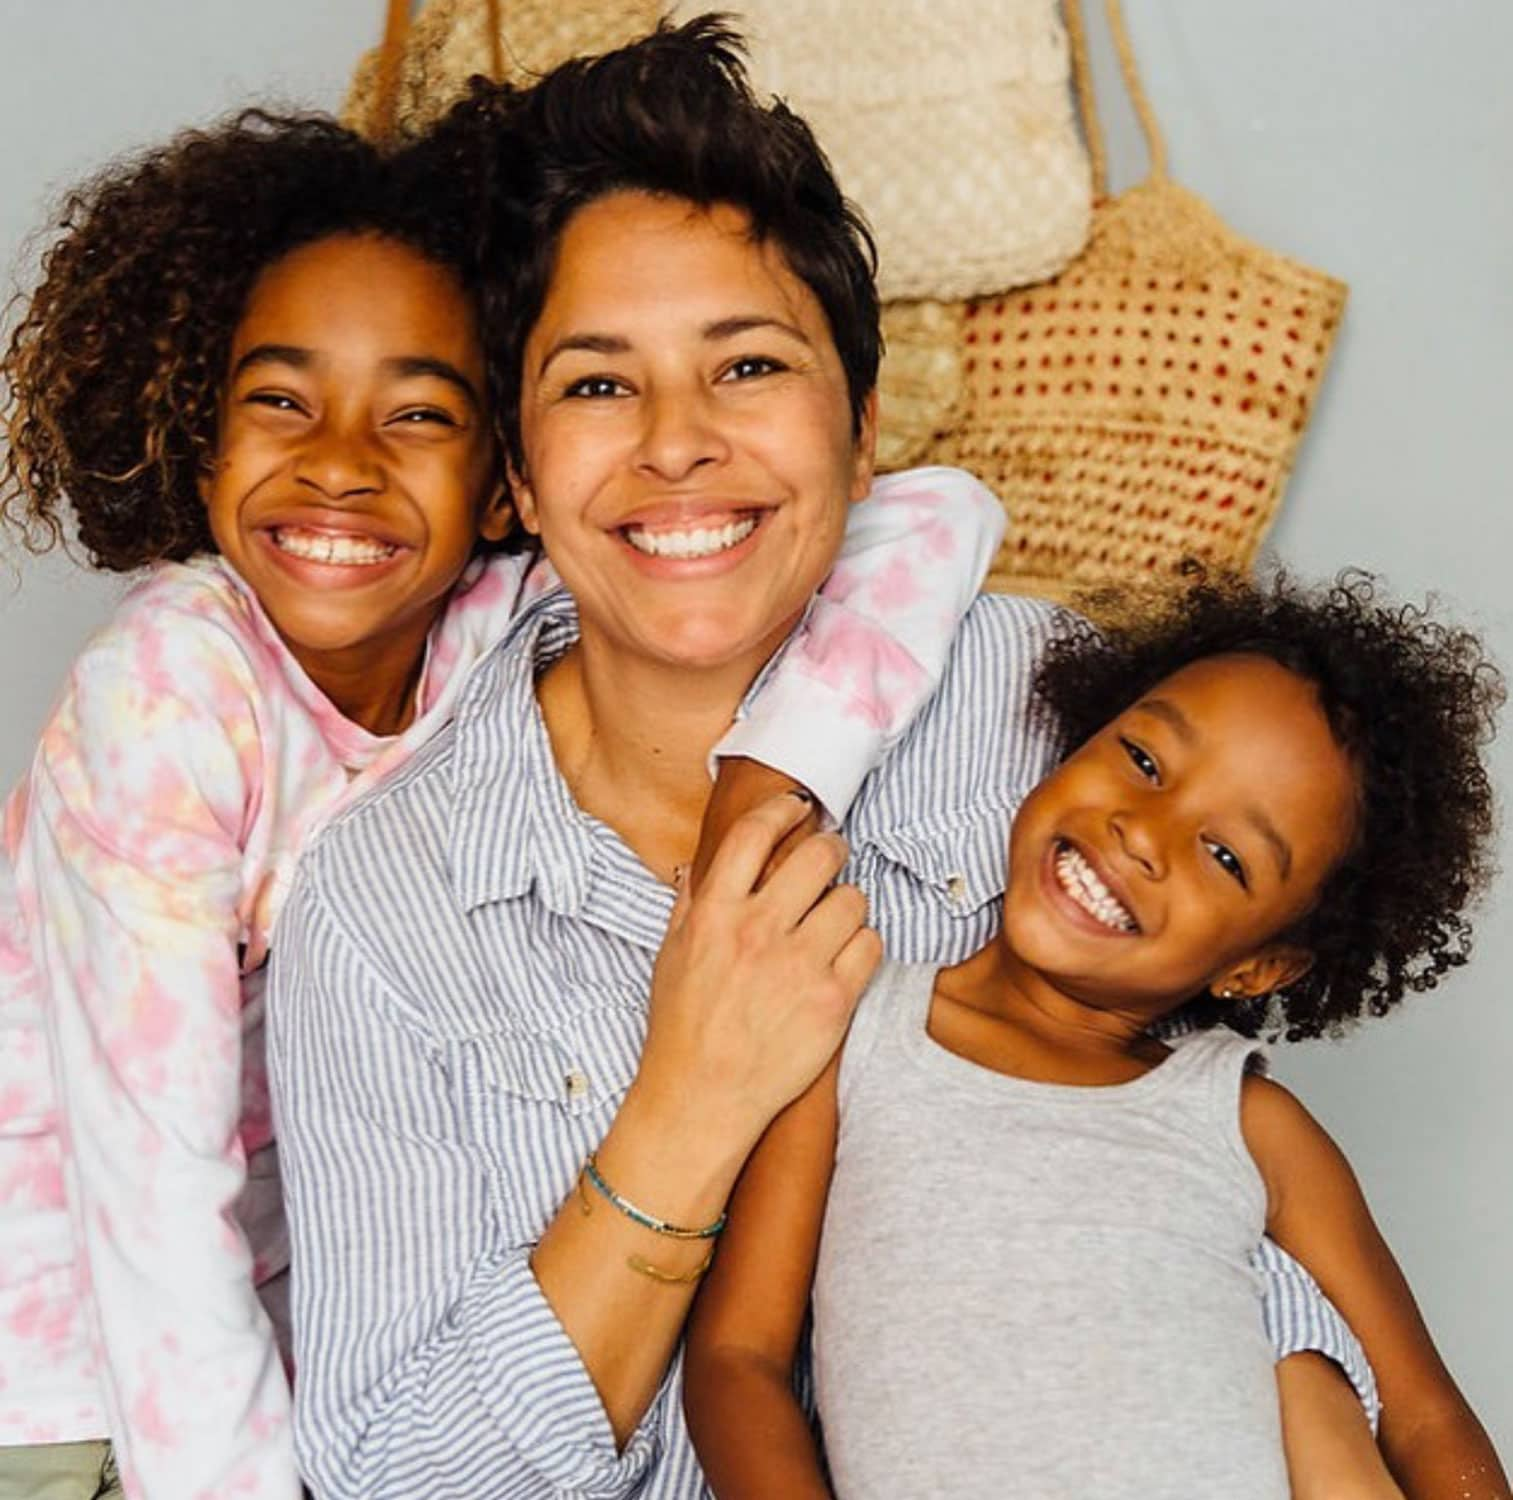 woman with two kids happy smiles